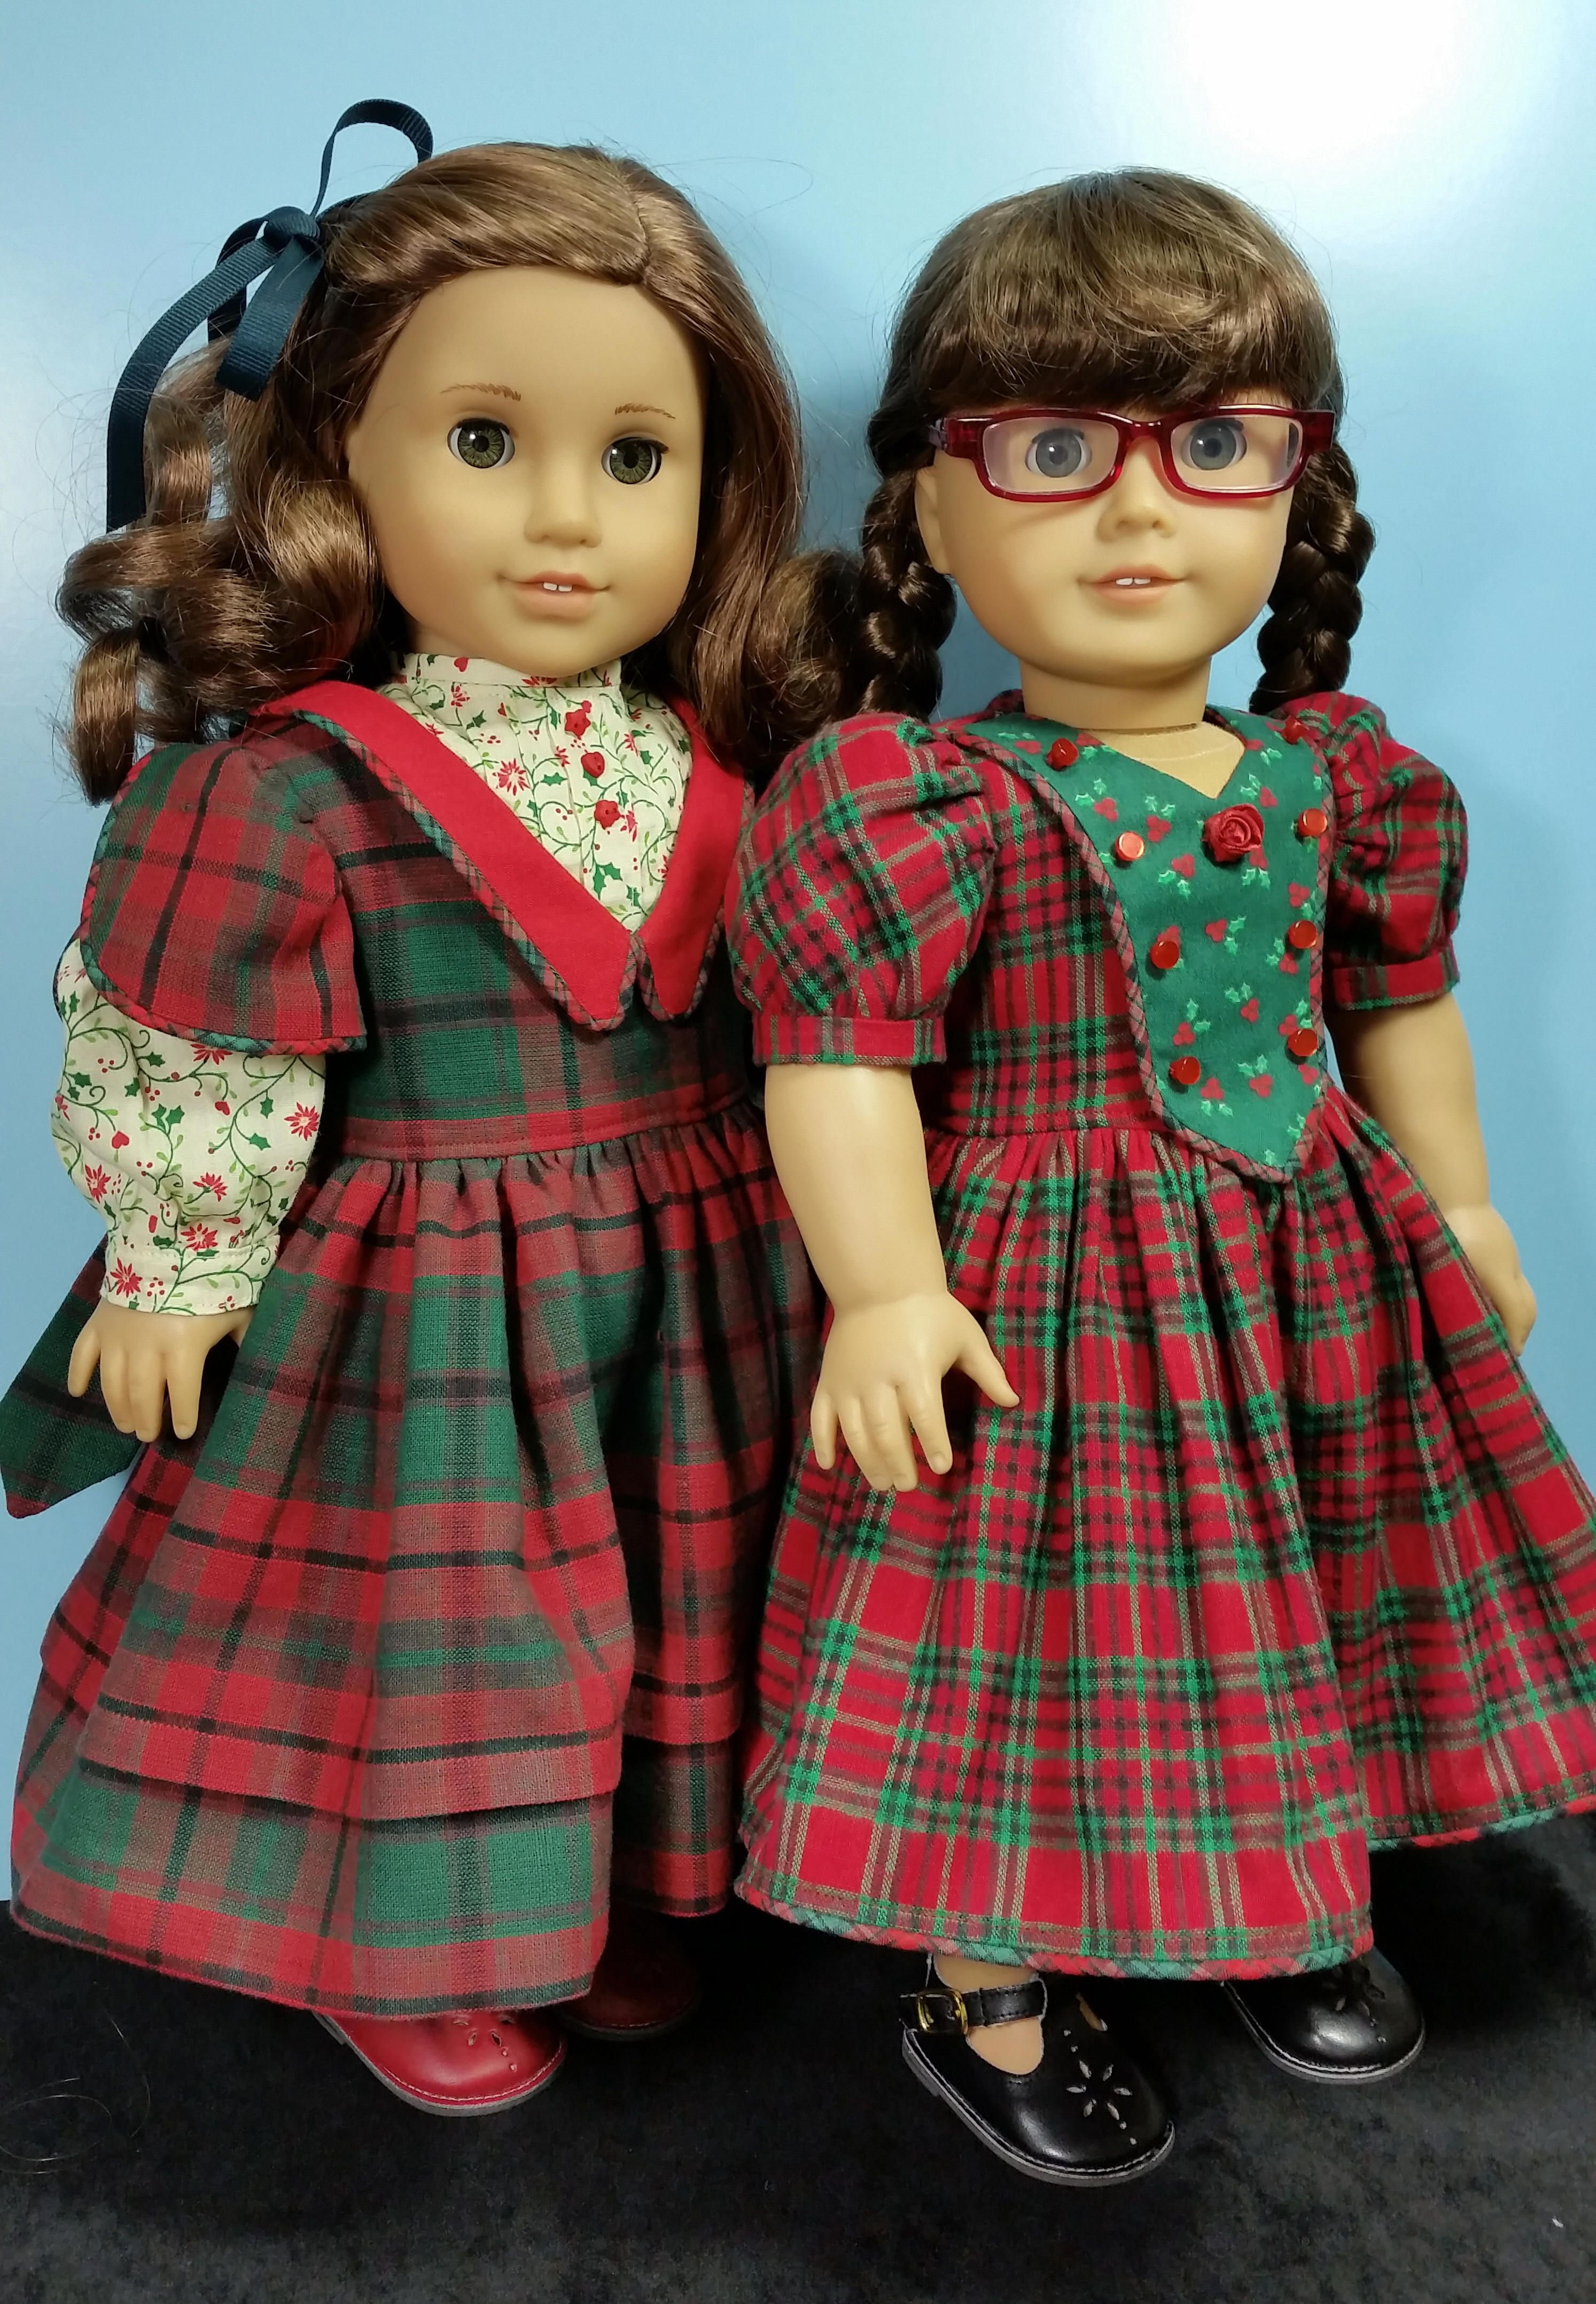 plaid christmas dresses the girls are ready for their holiday portraits sewn by shirley - Girls Plaid Christmas Dress